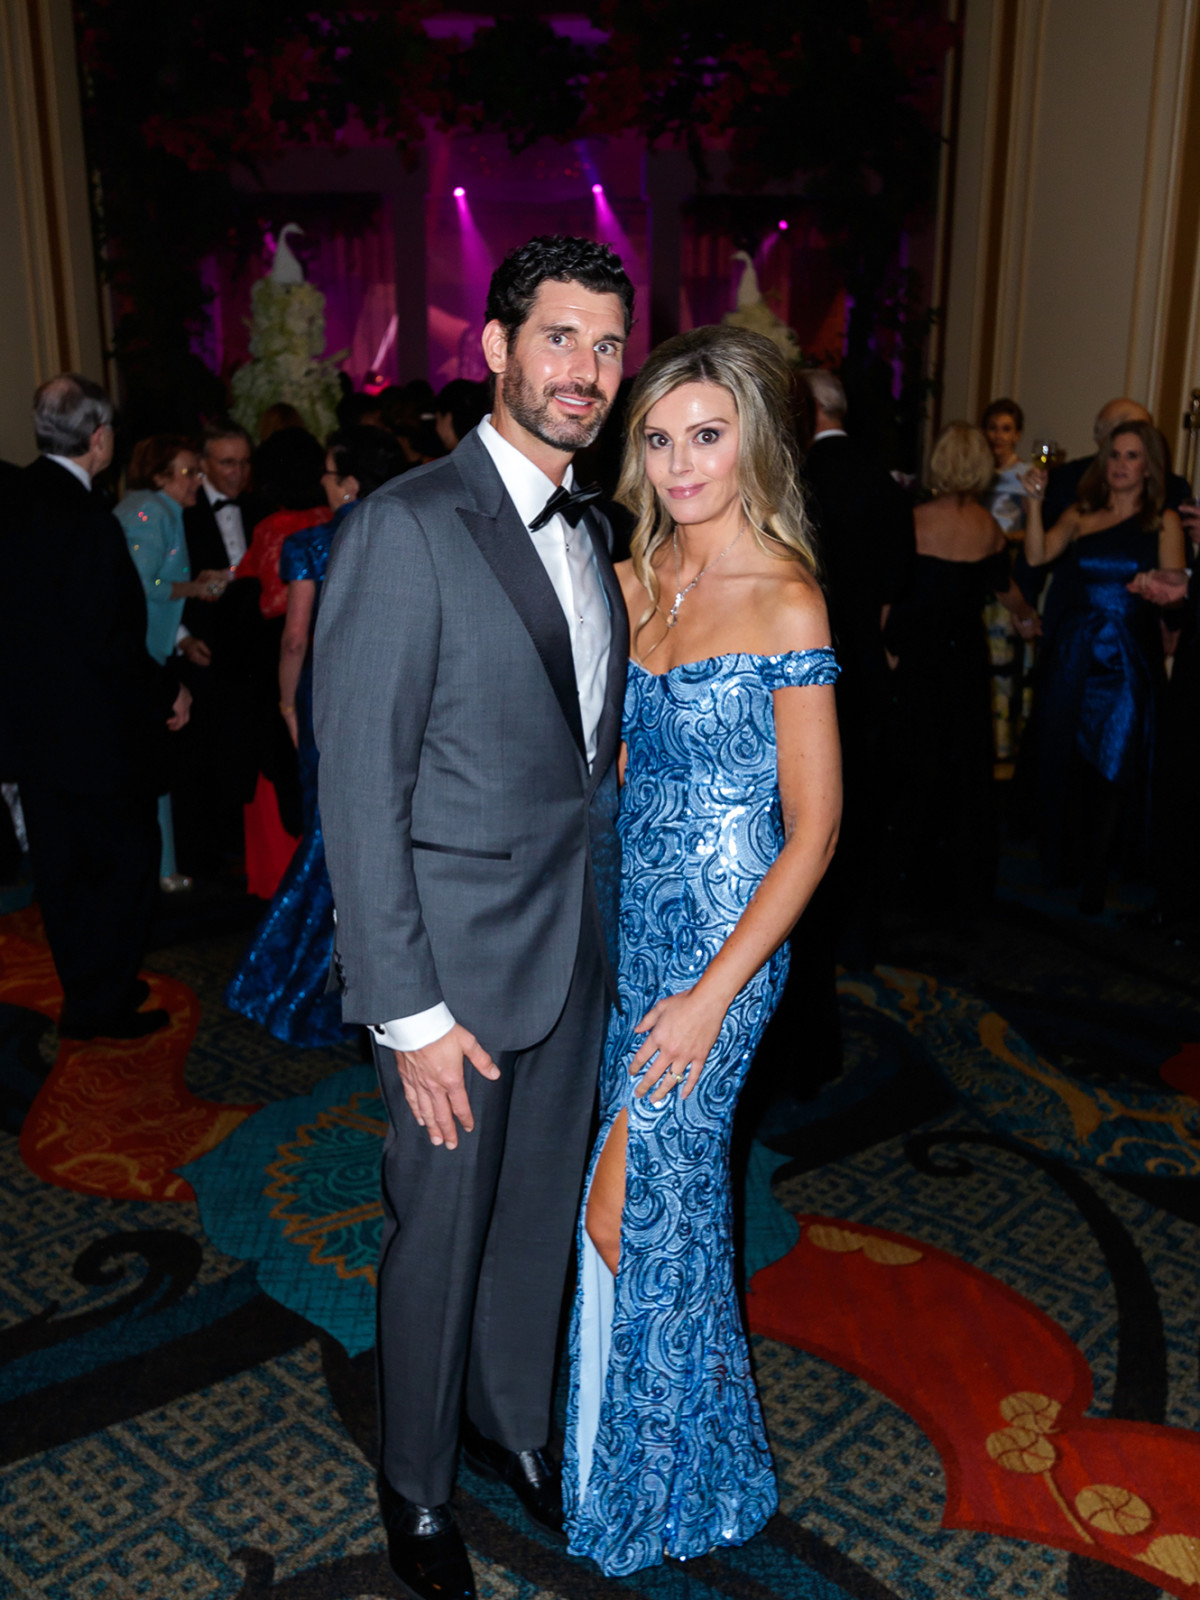 James Riefe, Holly Riefe - Mac Duggal